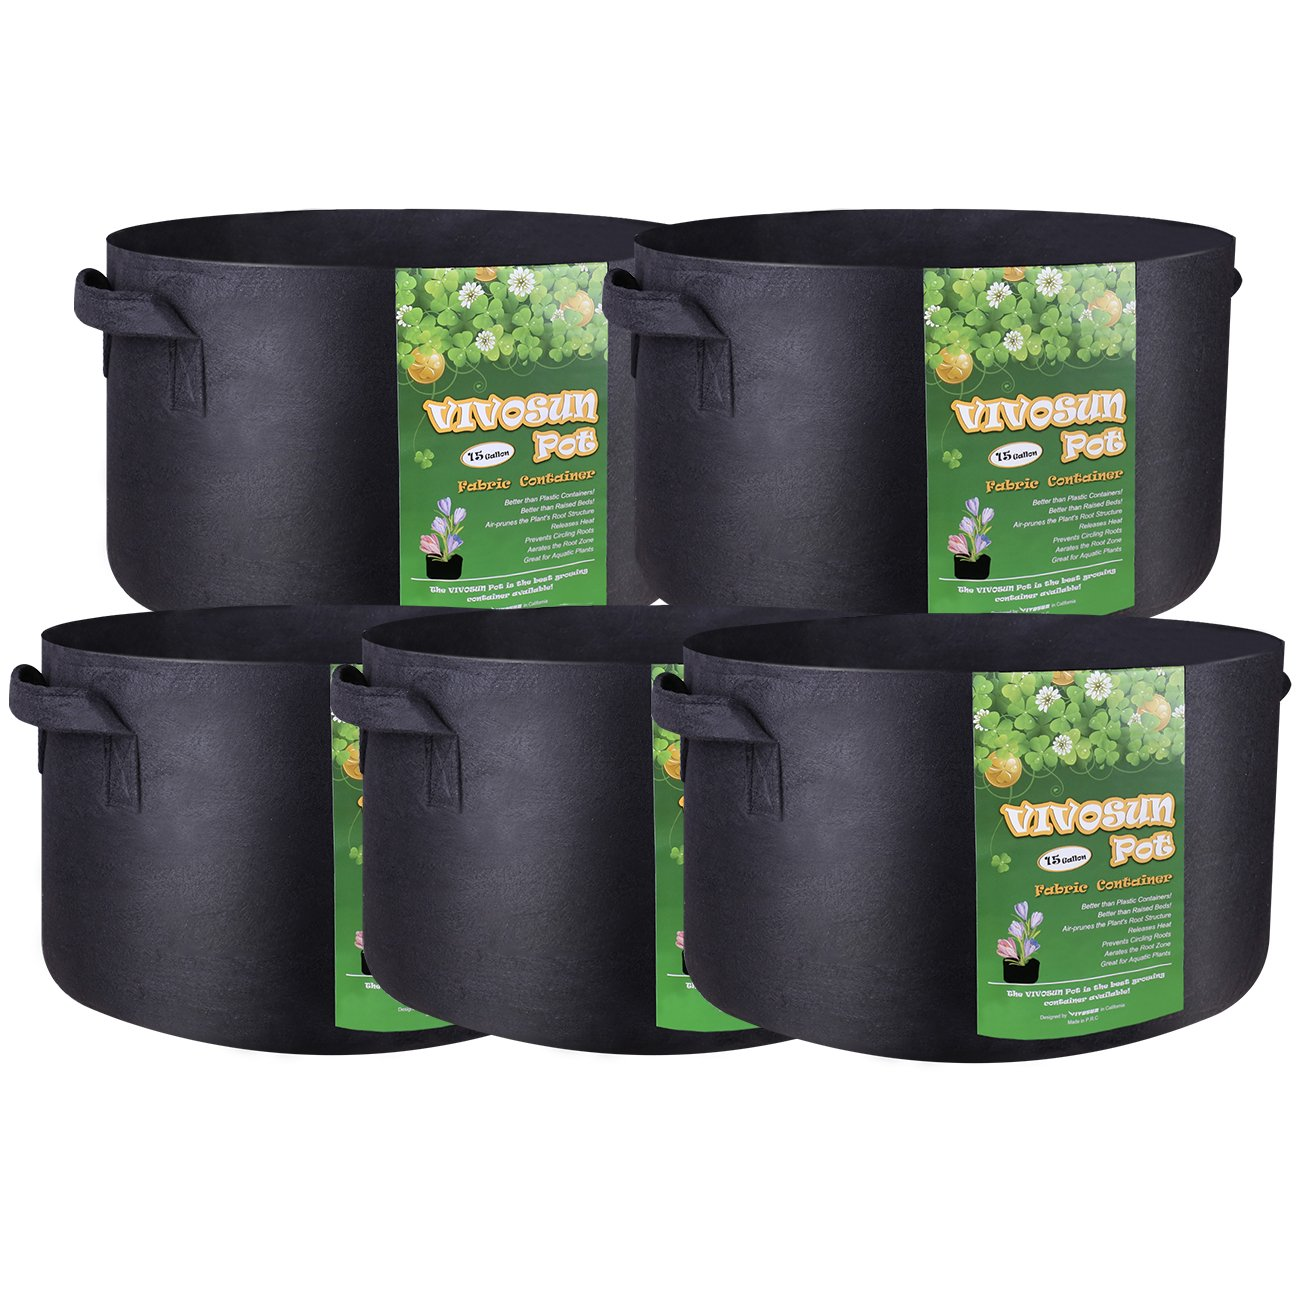 VIVOSUN 5-Pack 15 Gallon Plant Grow Bags, Premium Series Thichkened Non-Woven Aeration Fabric Pots w/Handles - Reinforced Weight Capacity & Extremely Durable (Black)